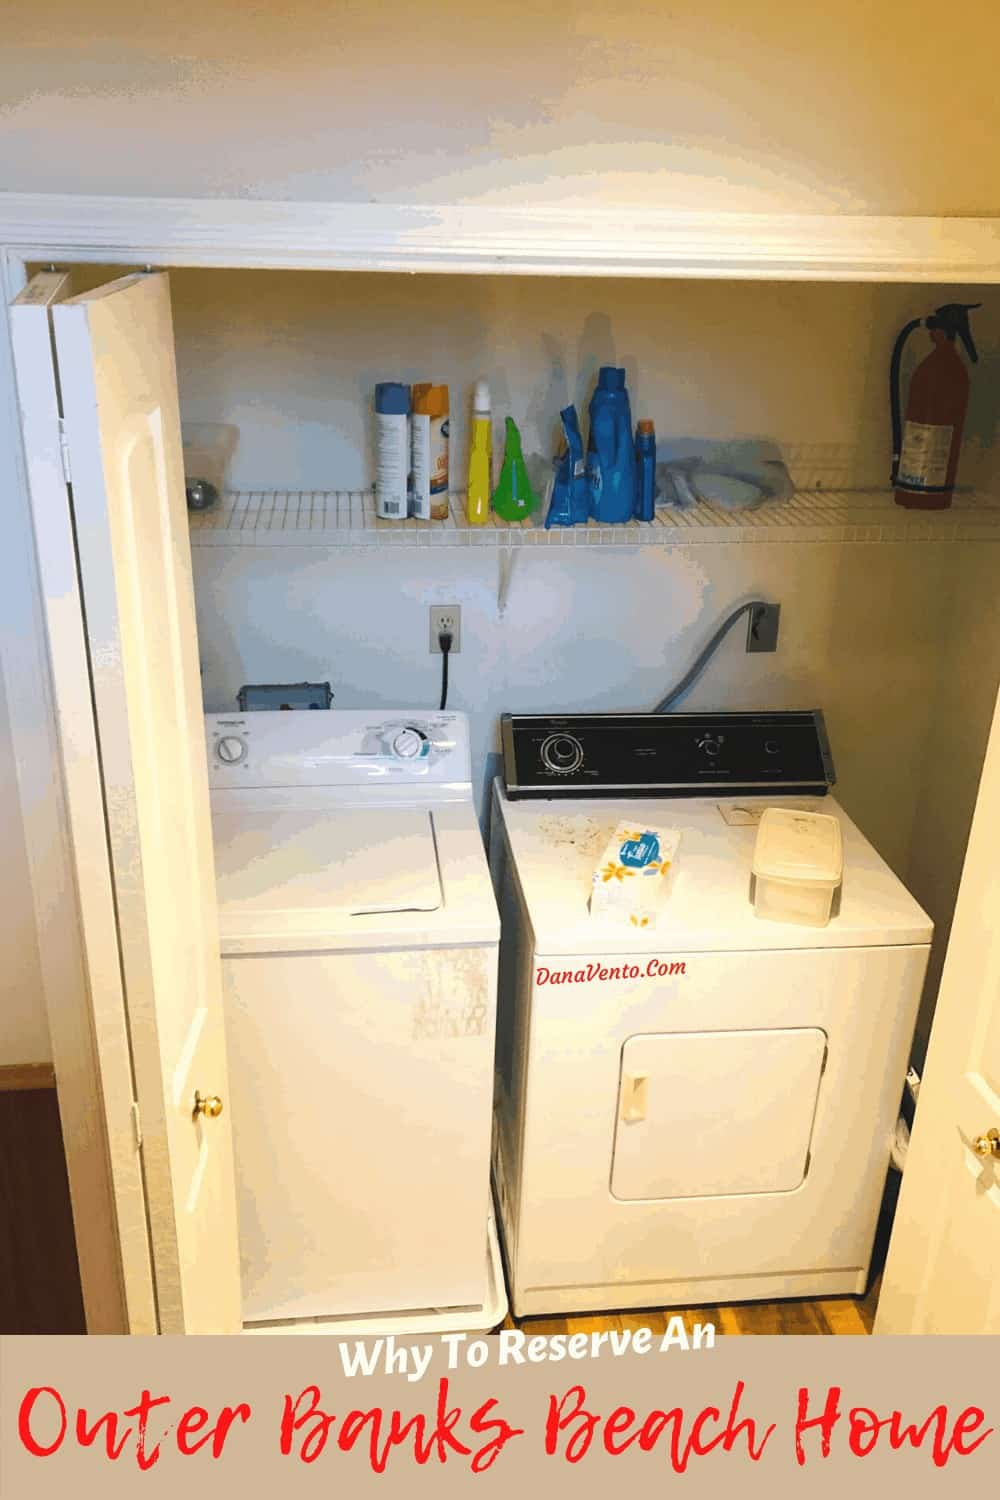 laundry room in our beach house at the Outer Banks